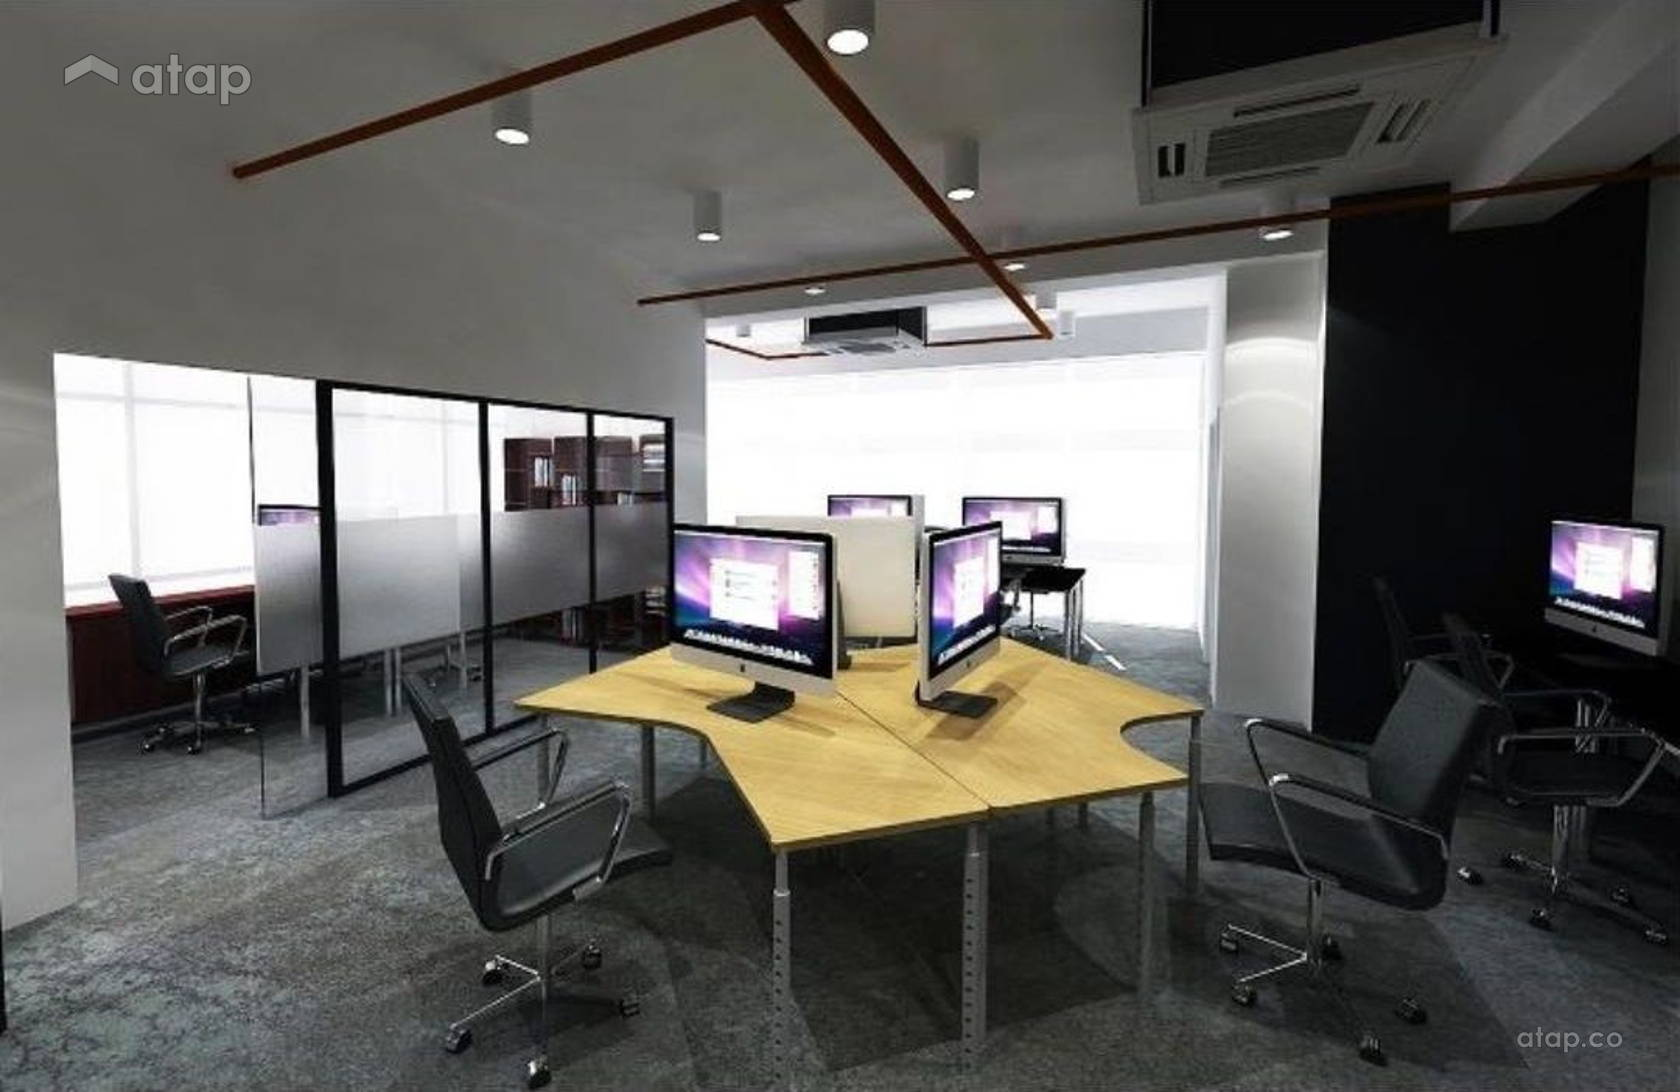 Office Renovation Ideas 4 Thirteen Media Office Interior Design Renovation Ideas Photos